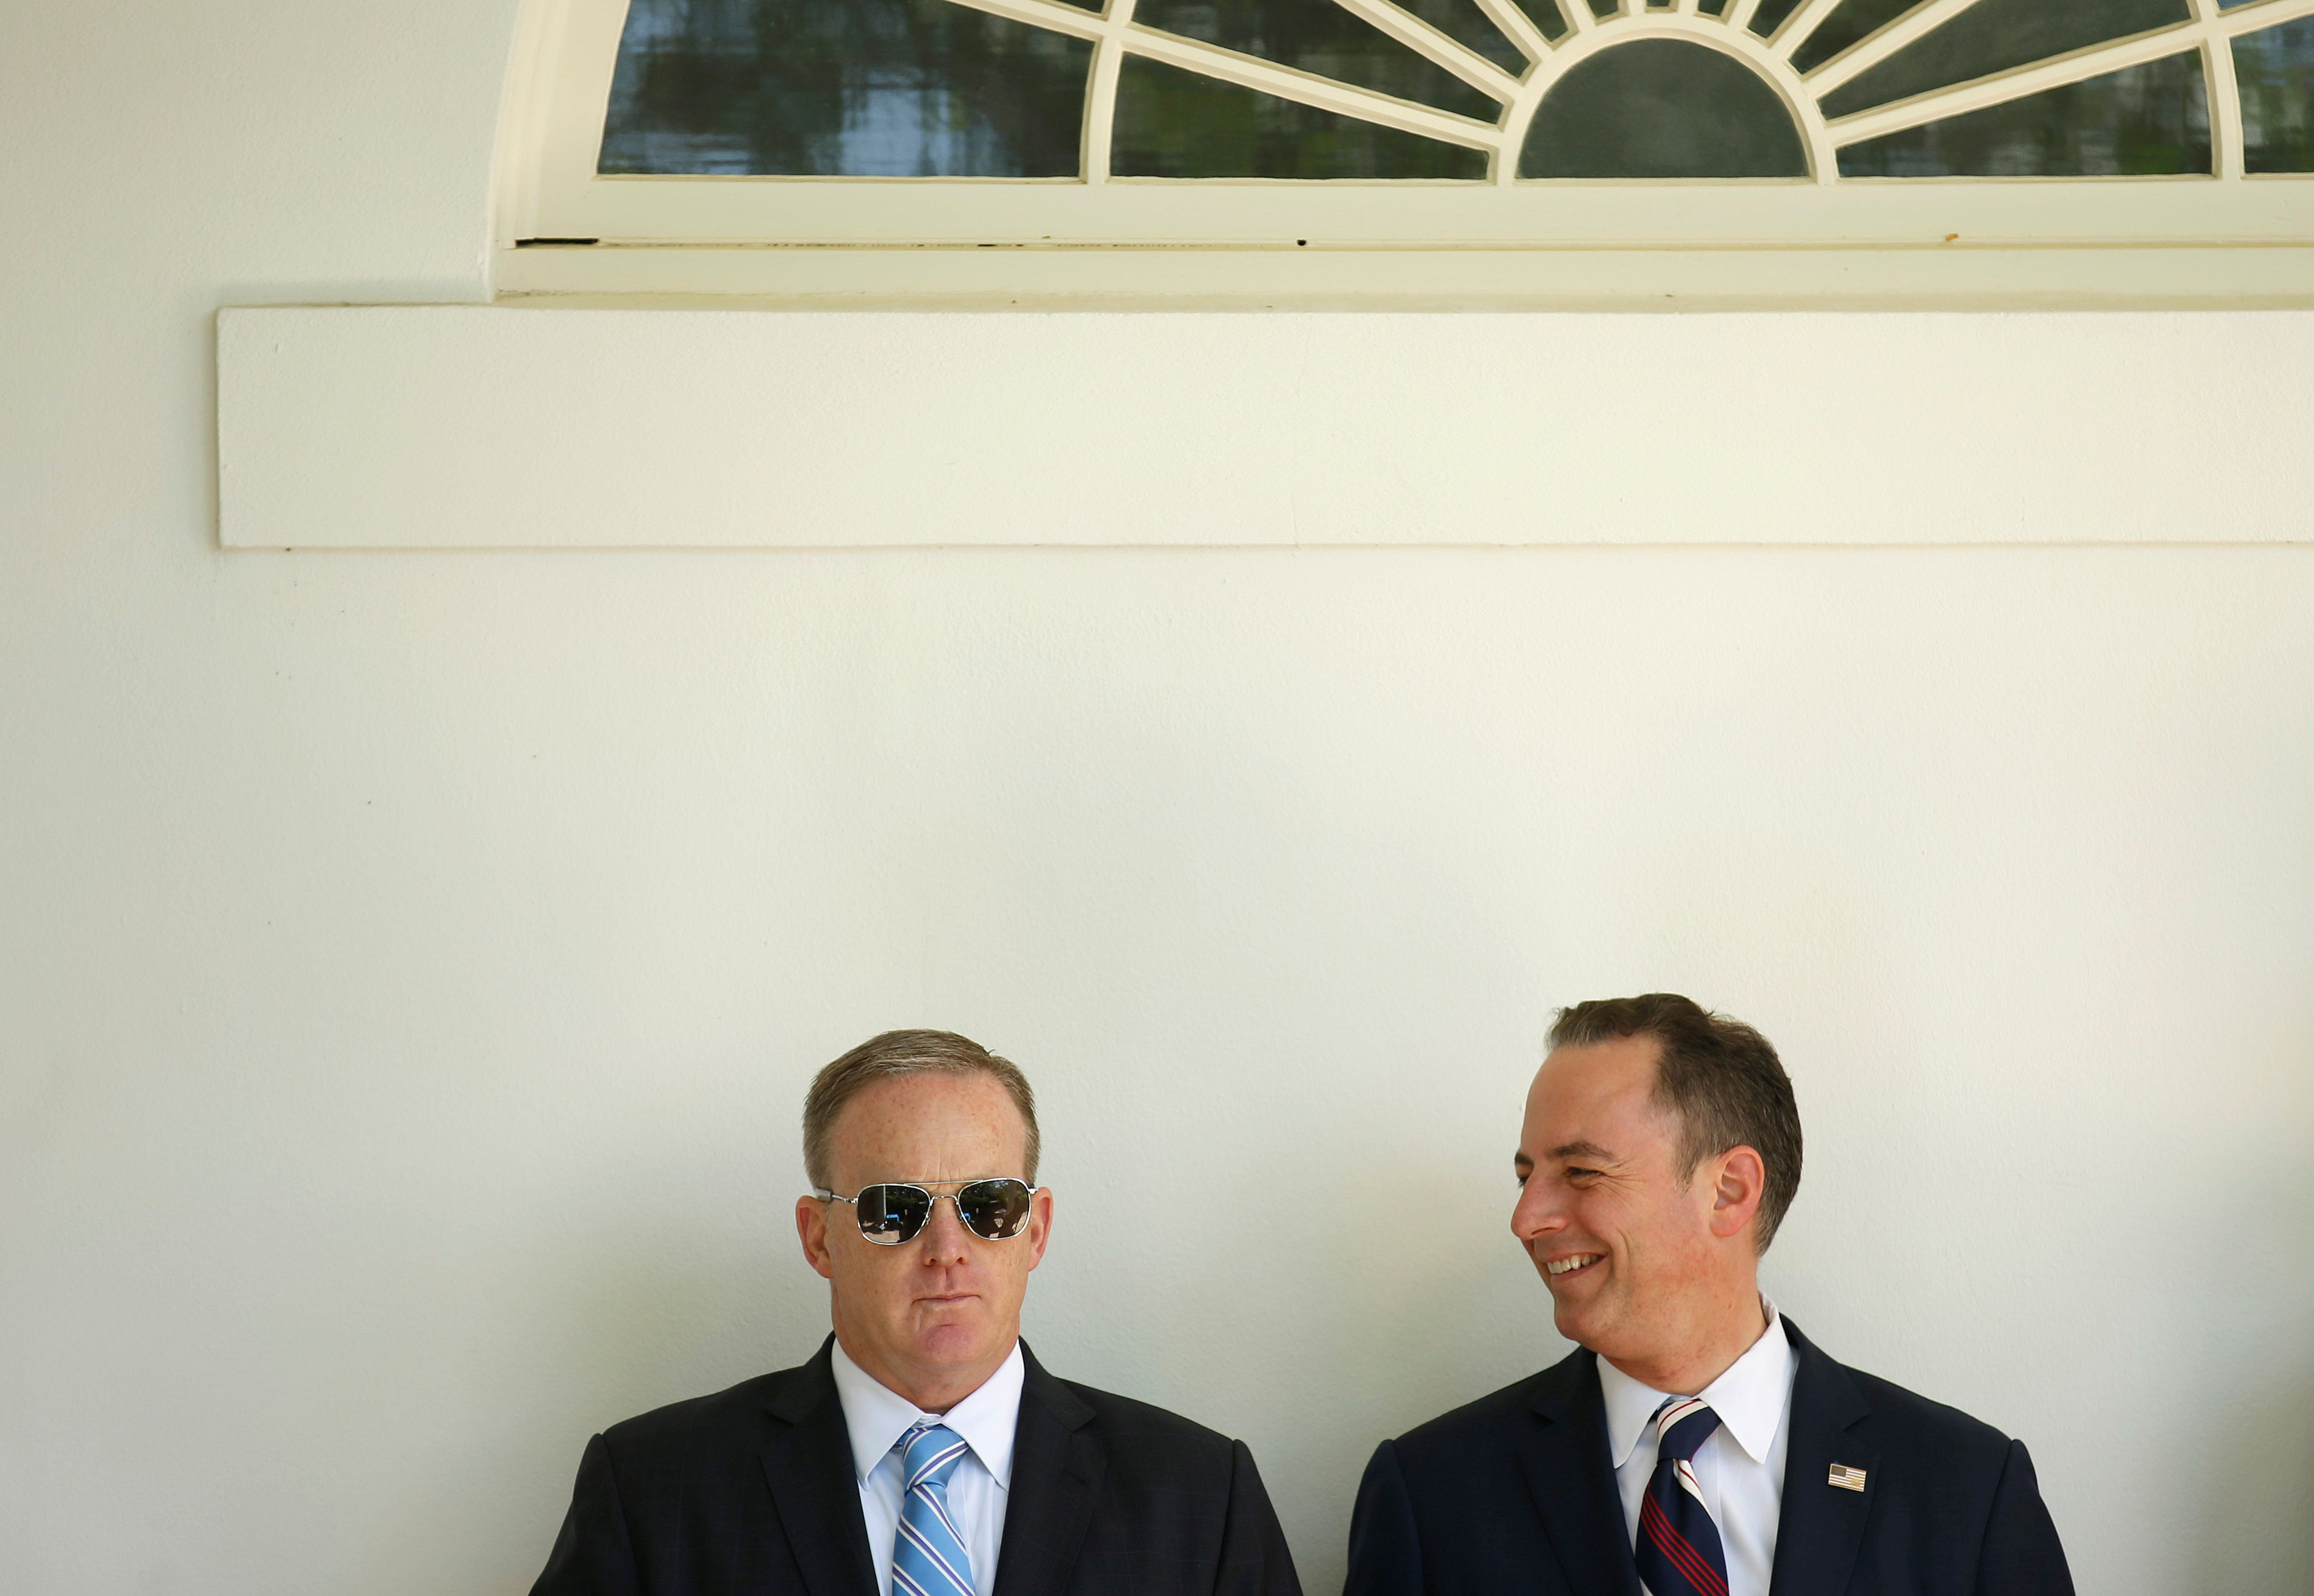 White House Press Secretary Sean Spicer (L) and White House Chief of Staff Reince Priebus watch as U.S. President Donald Trump presents the U.S. Air Force Academy football team with the Commander-in-Chief trophy in the Rose Garden of the White House in Washington, U.S., May 2, 2017. REUTERS/Joshua Roberts